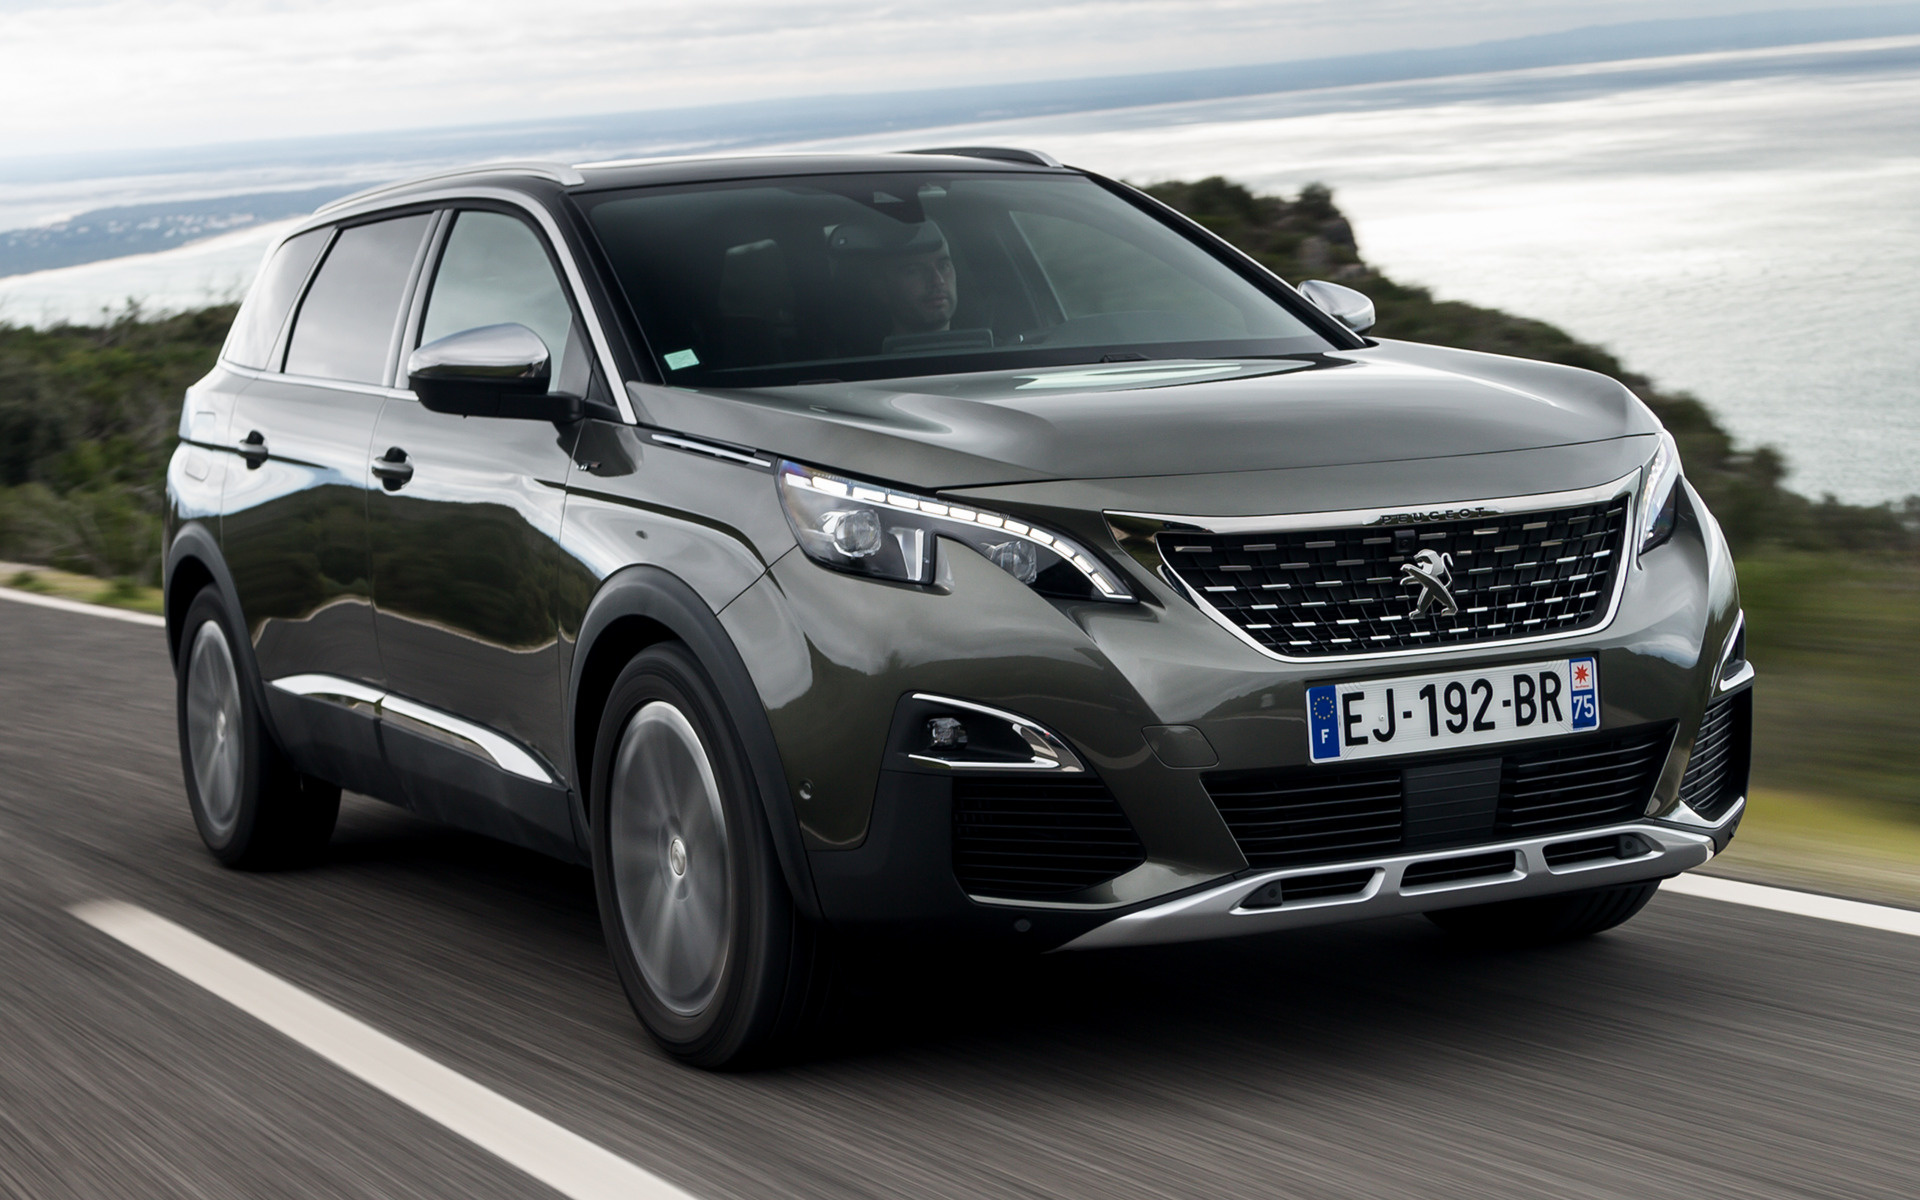 2017 Peugeot 5008 GT - Wallpapers and HD Images | Car Pixel